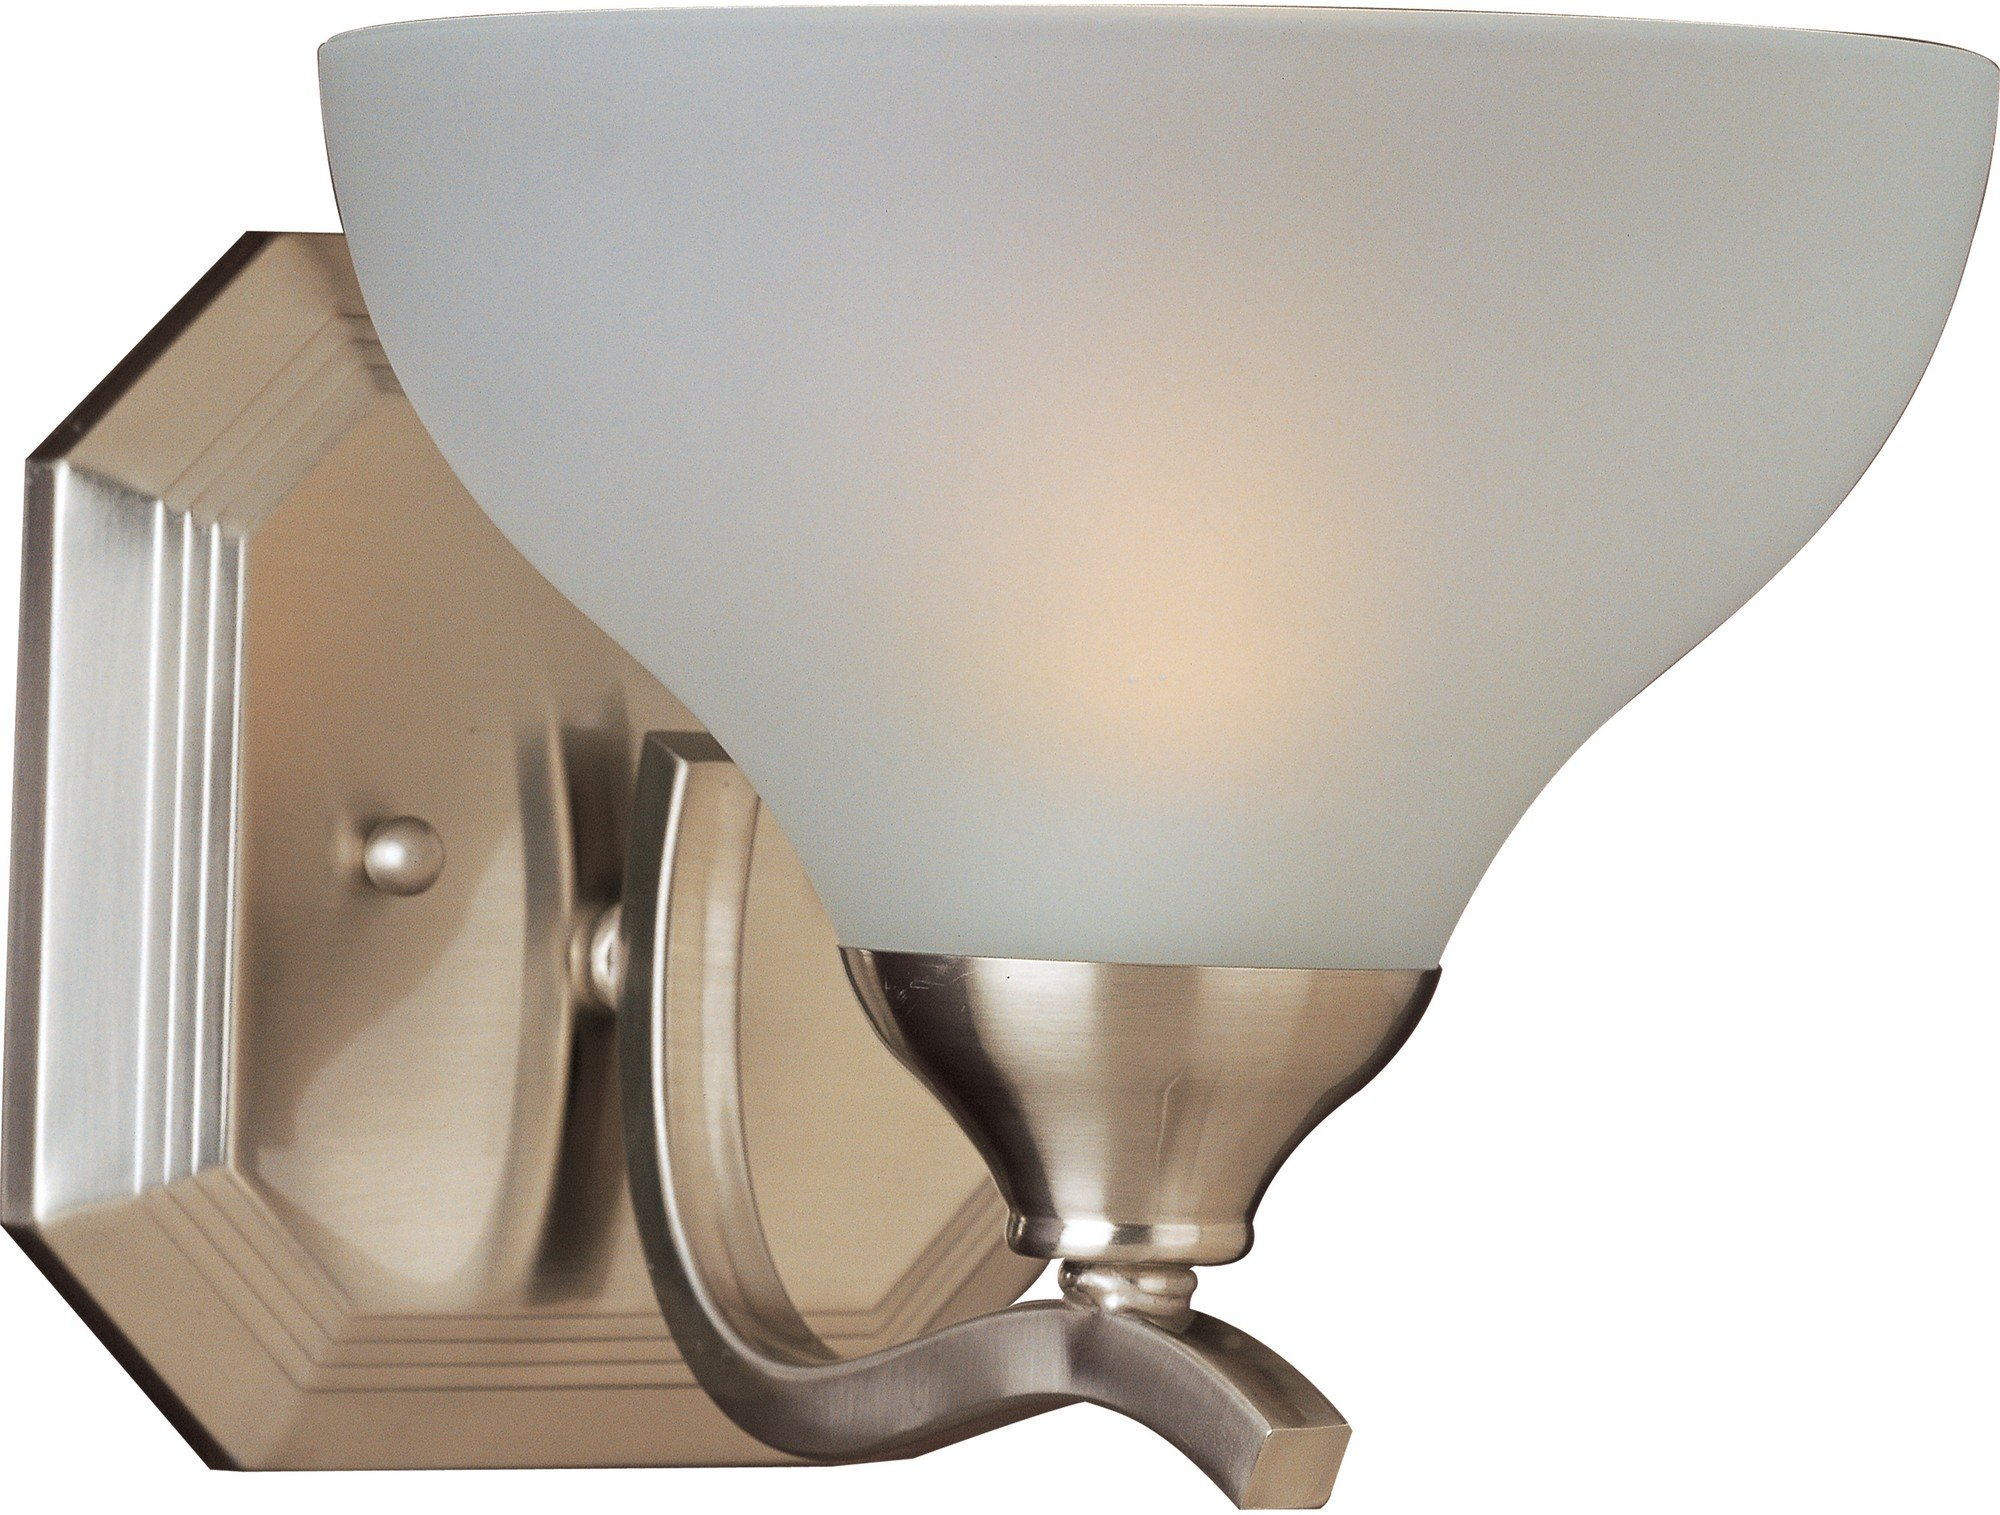 Maxim 21271FTSN Contour 1-Light Wall Sconce Bath Vanity, Satin Nickel Finish, Frosted Glass, MB Incandescent Bulb , 100W Max., Dry Safety Rating, Standard Dimmable, Glass Shade Material, 2300 Rated Lumens